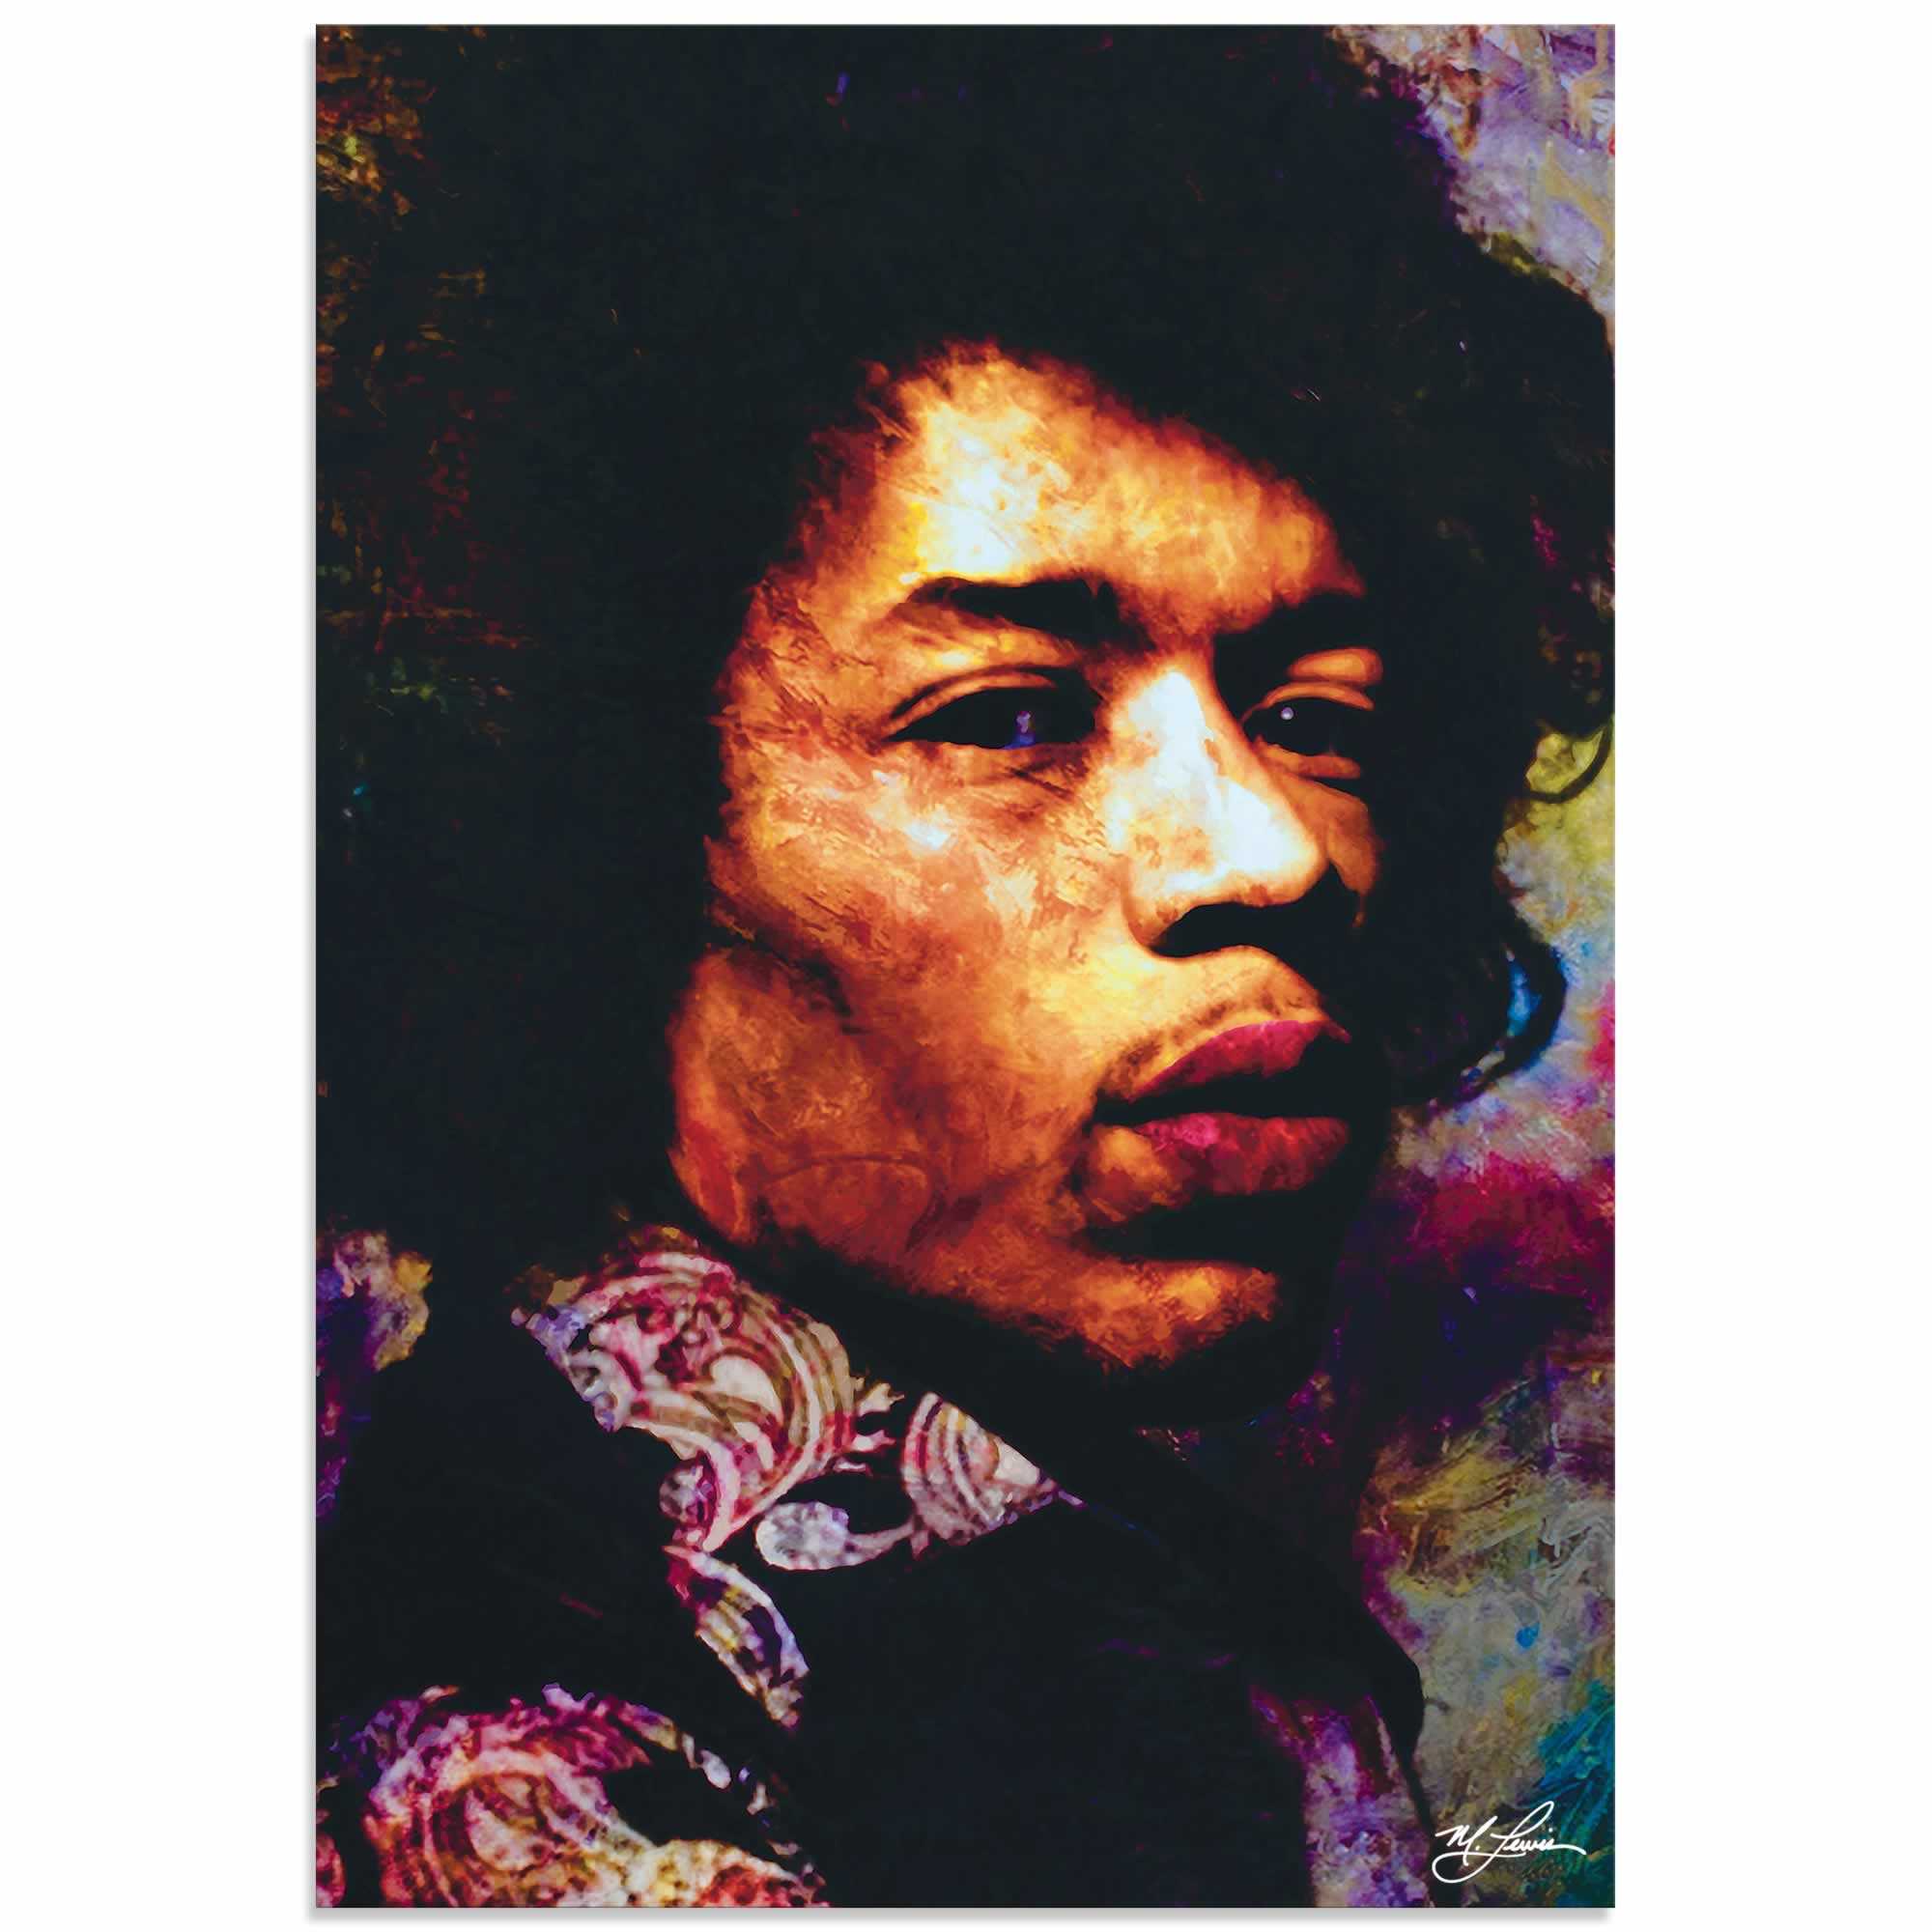 Jimi Hendrix Imagination Key | Pop Art Painting by Mark Lewis, Signed & Numbered Limited Edition